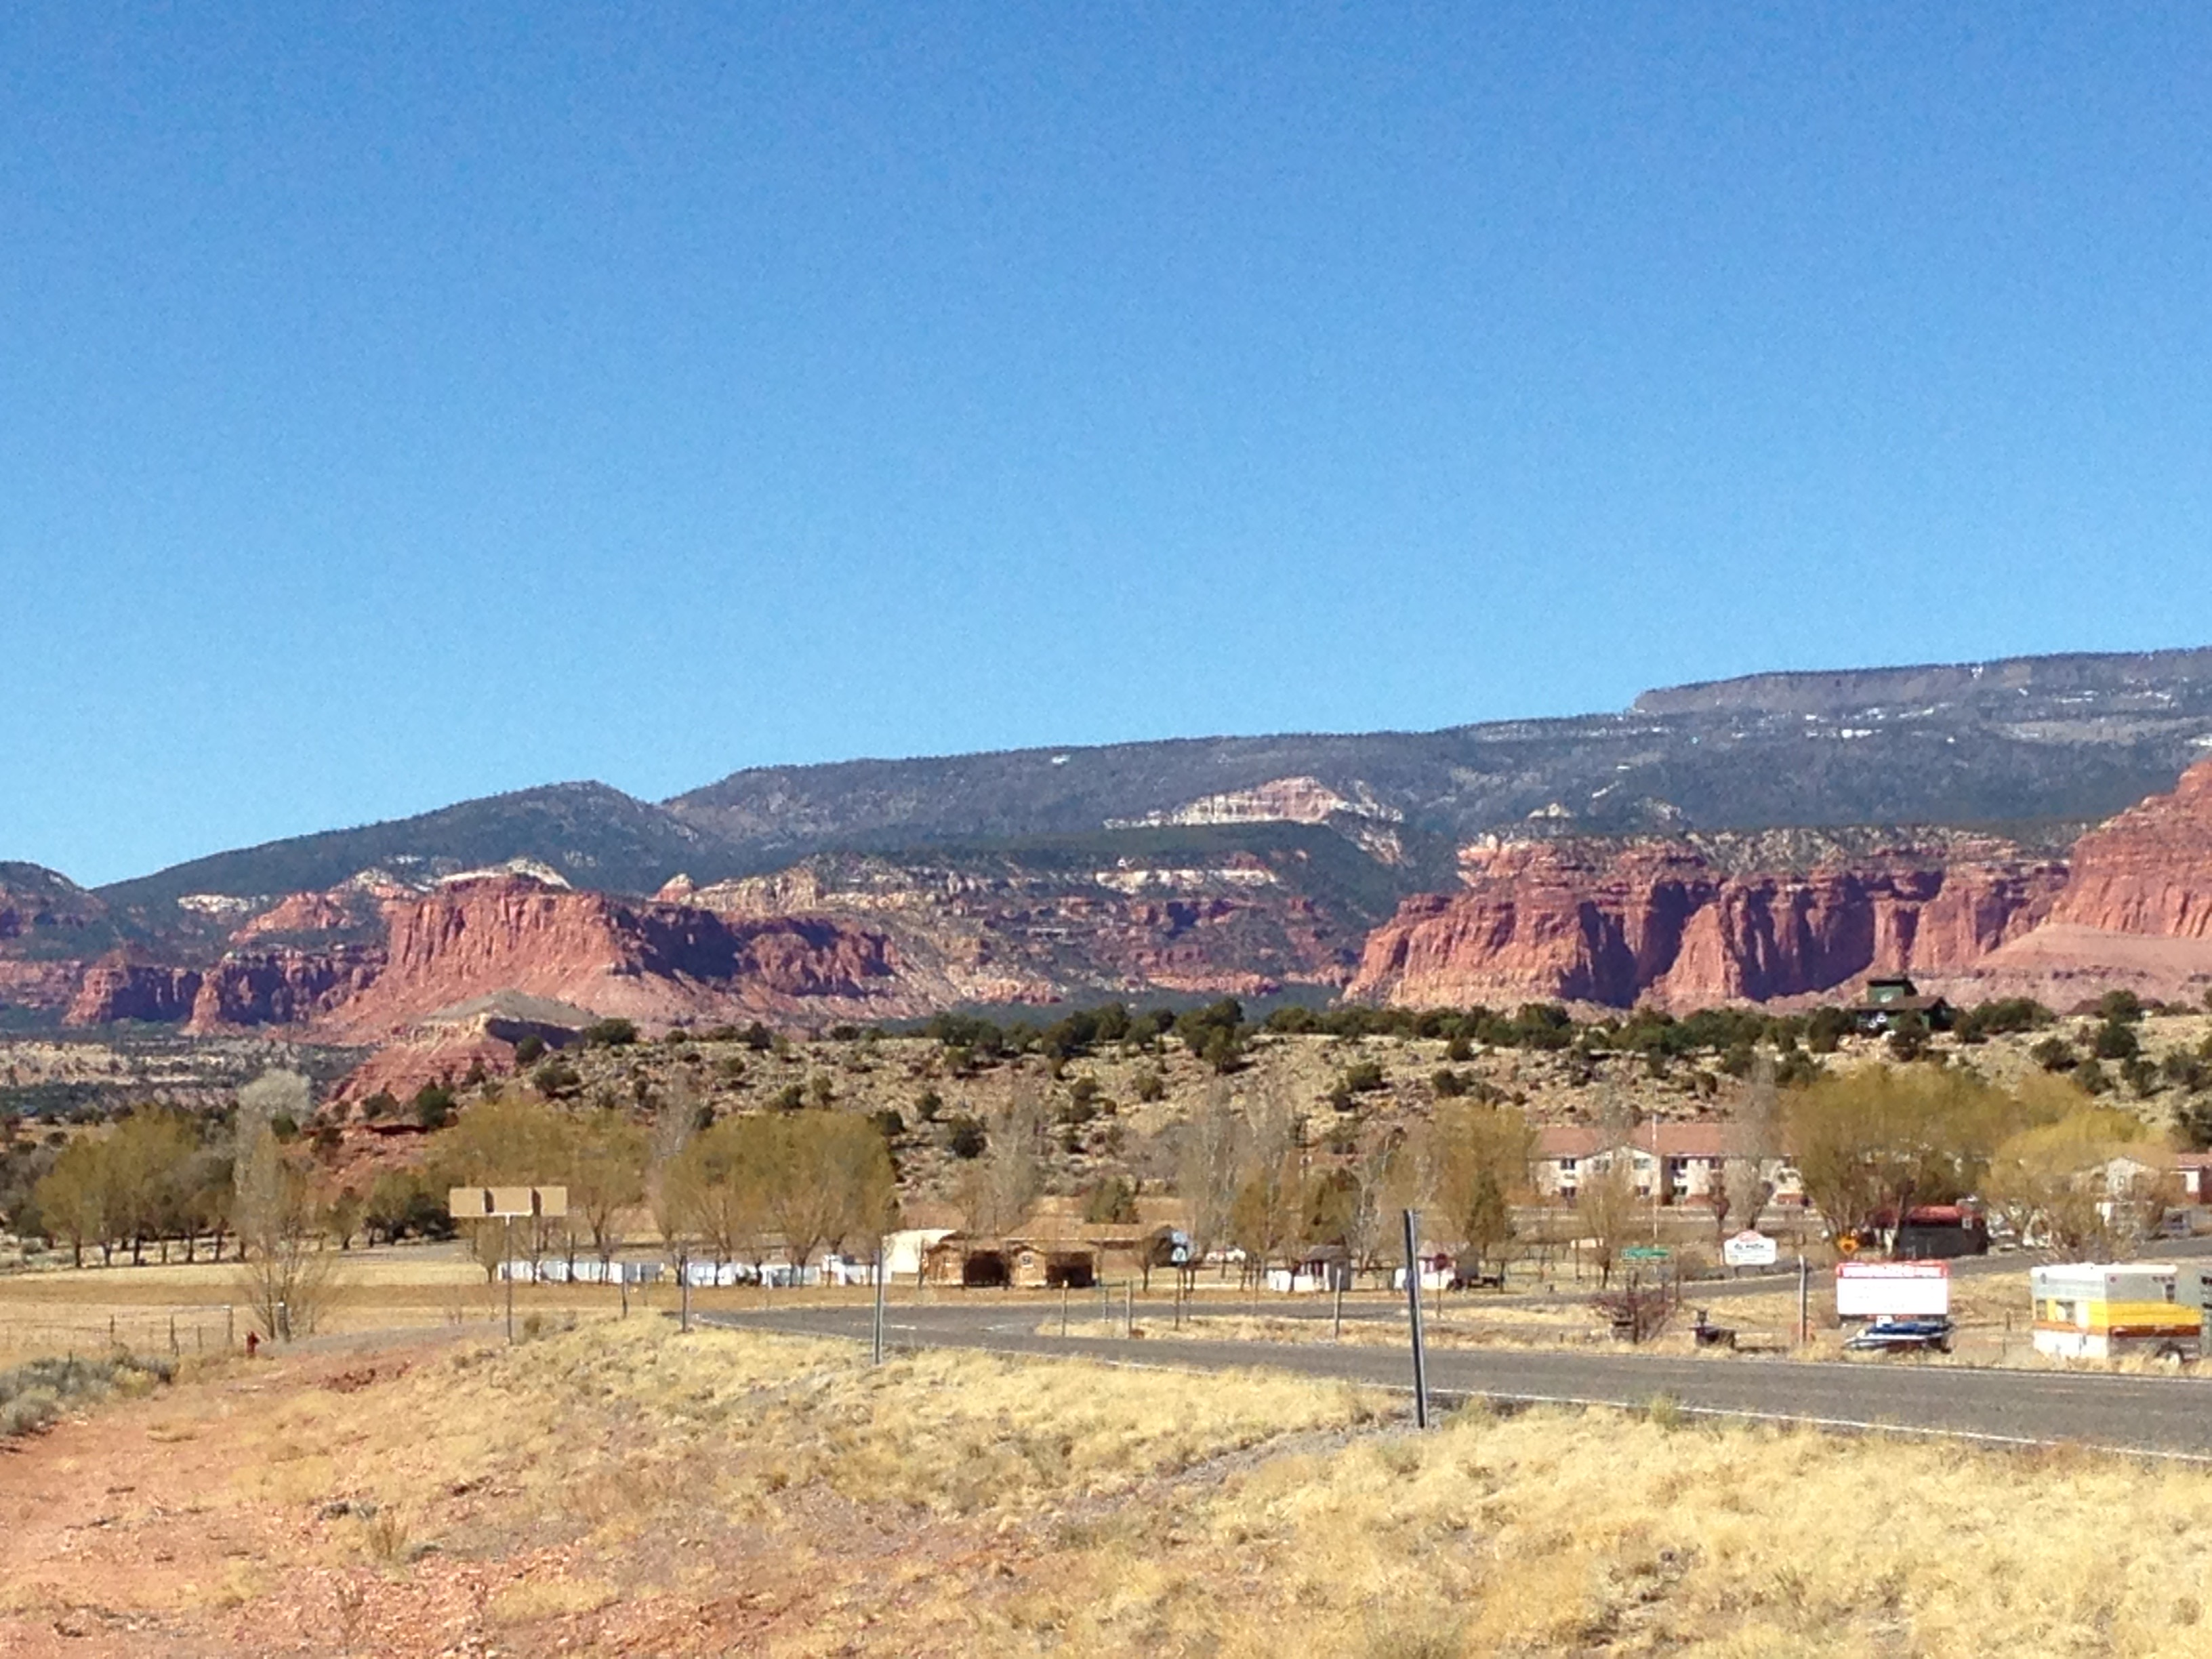 Torry Utah - less than a day from Park City